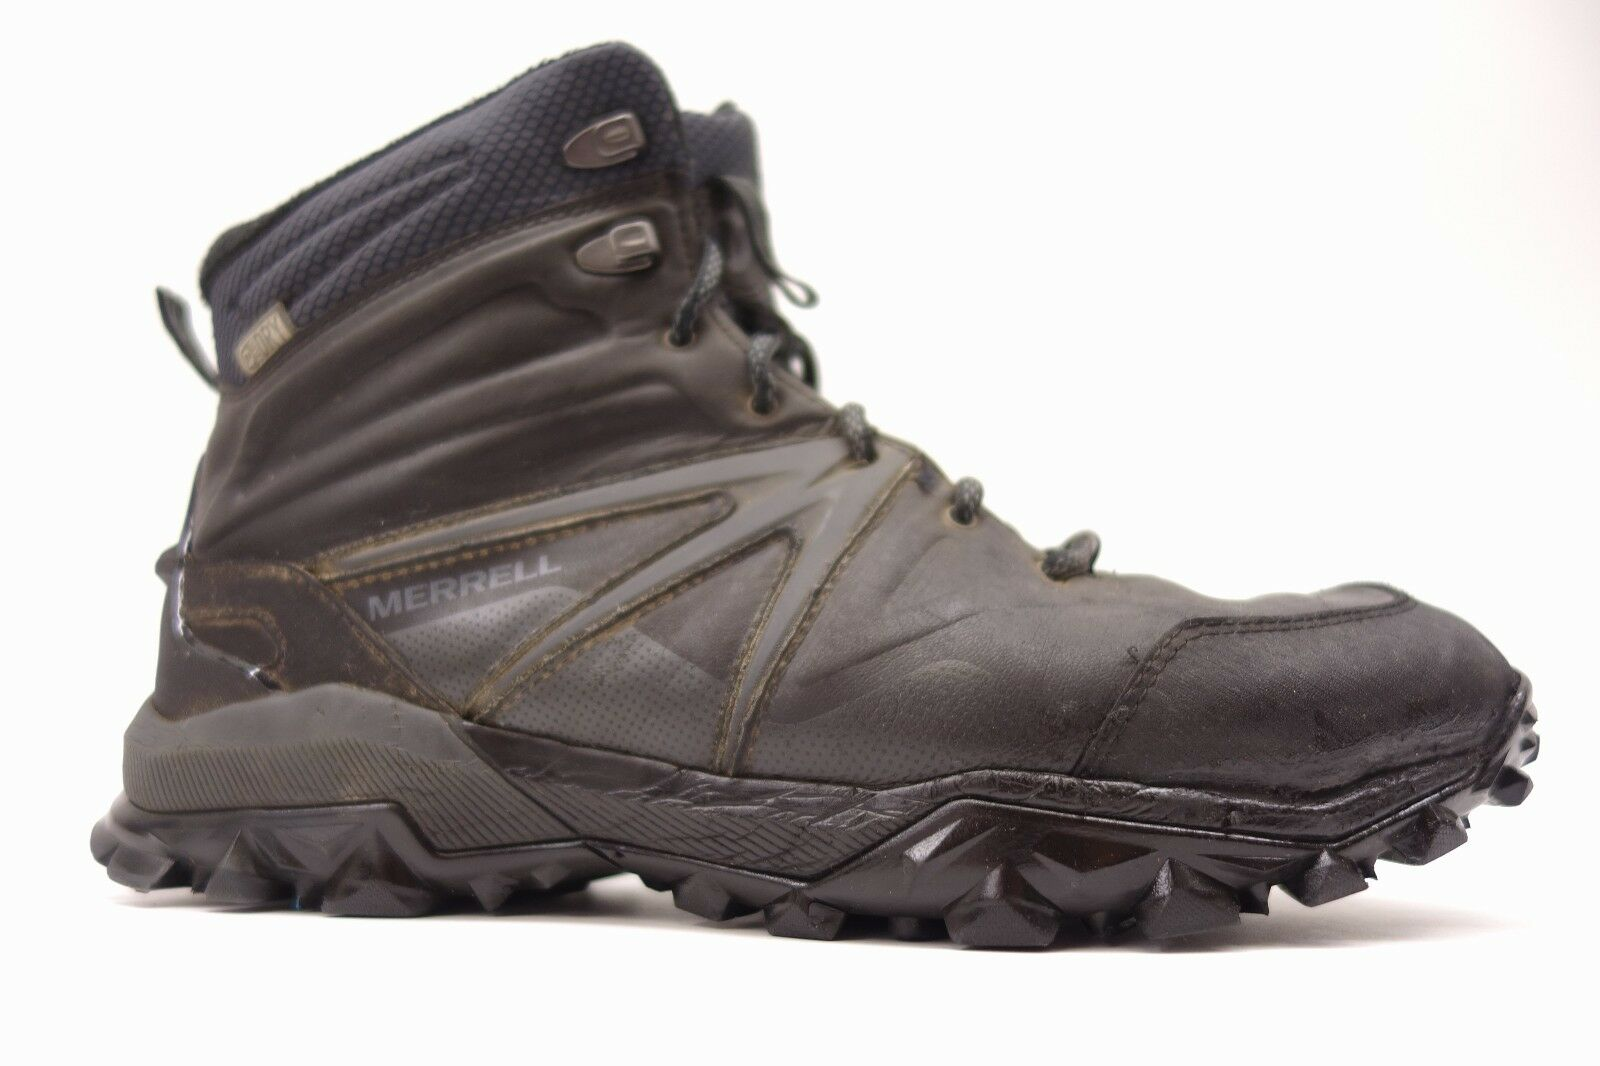 Merrell Mens Capra Rapid Glacial Ice+ Mid Athletic Support Boots Shoes Size 10.5